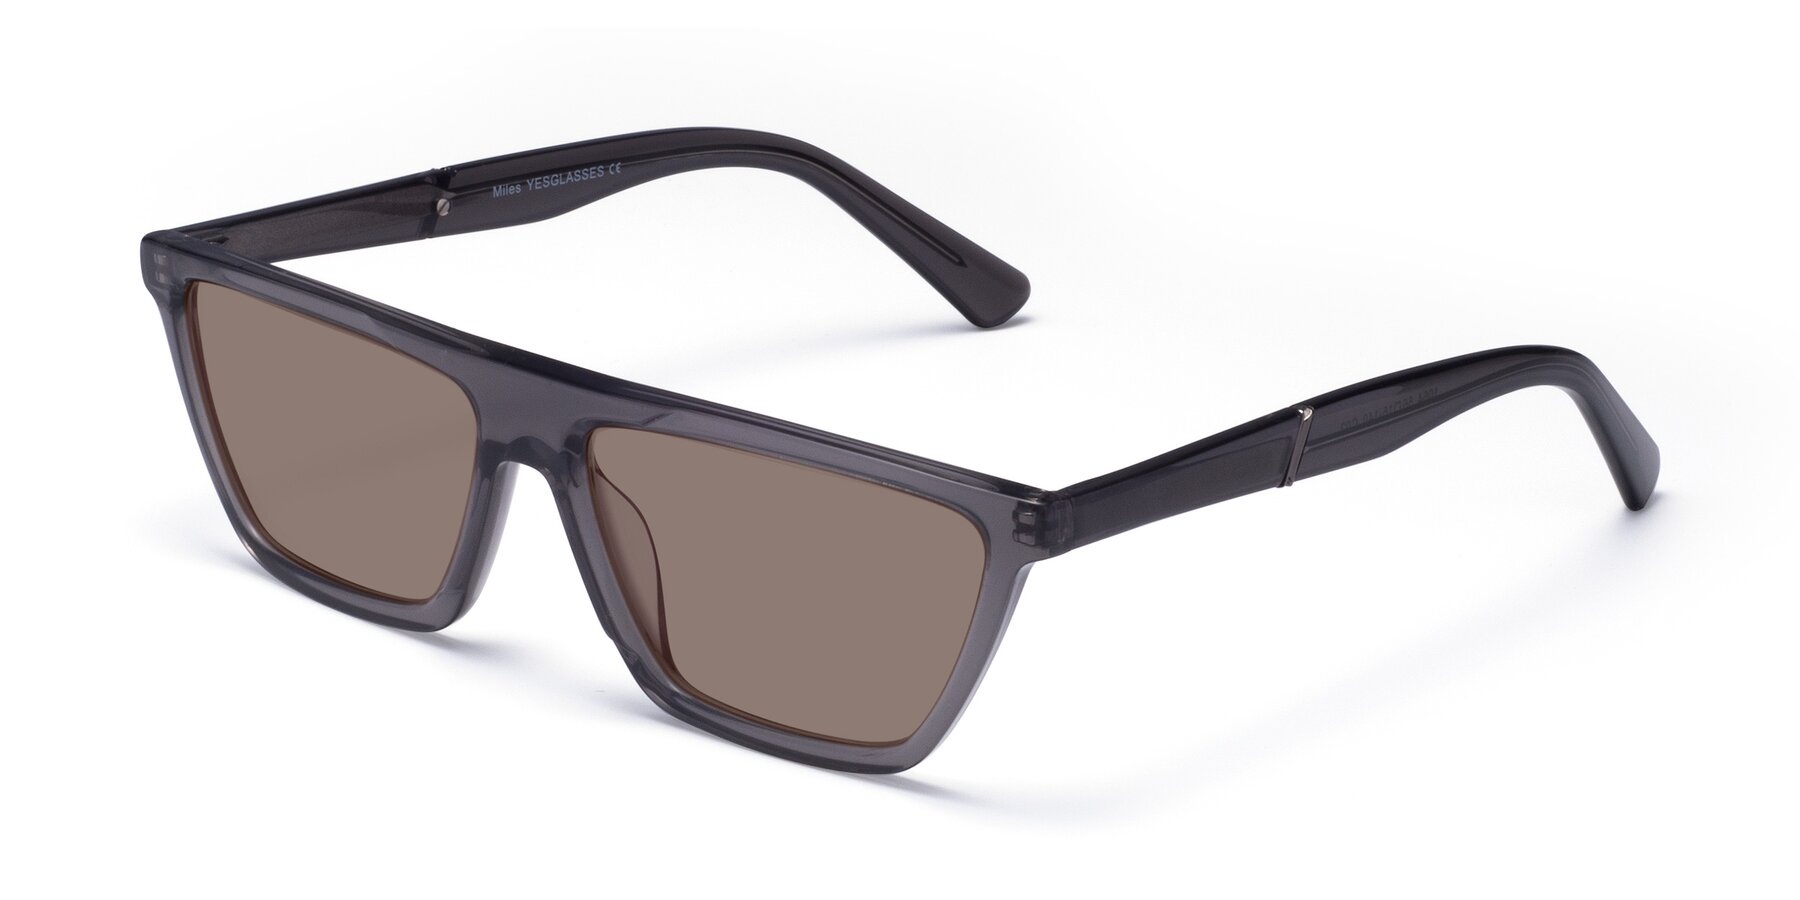 Angle of Miles in Translucent Gray with Medium Brown Tinted Lenses